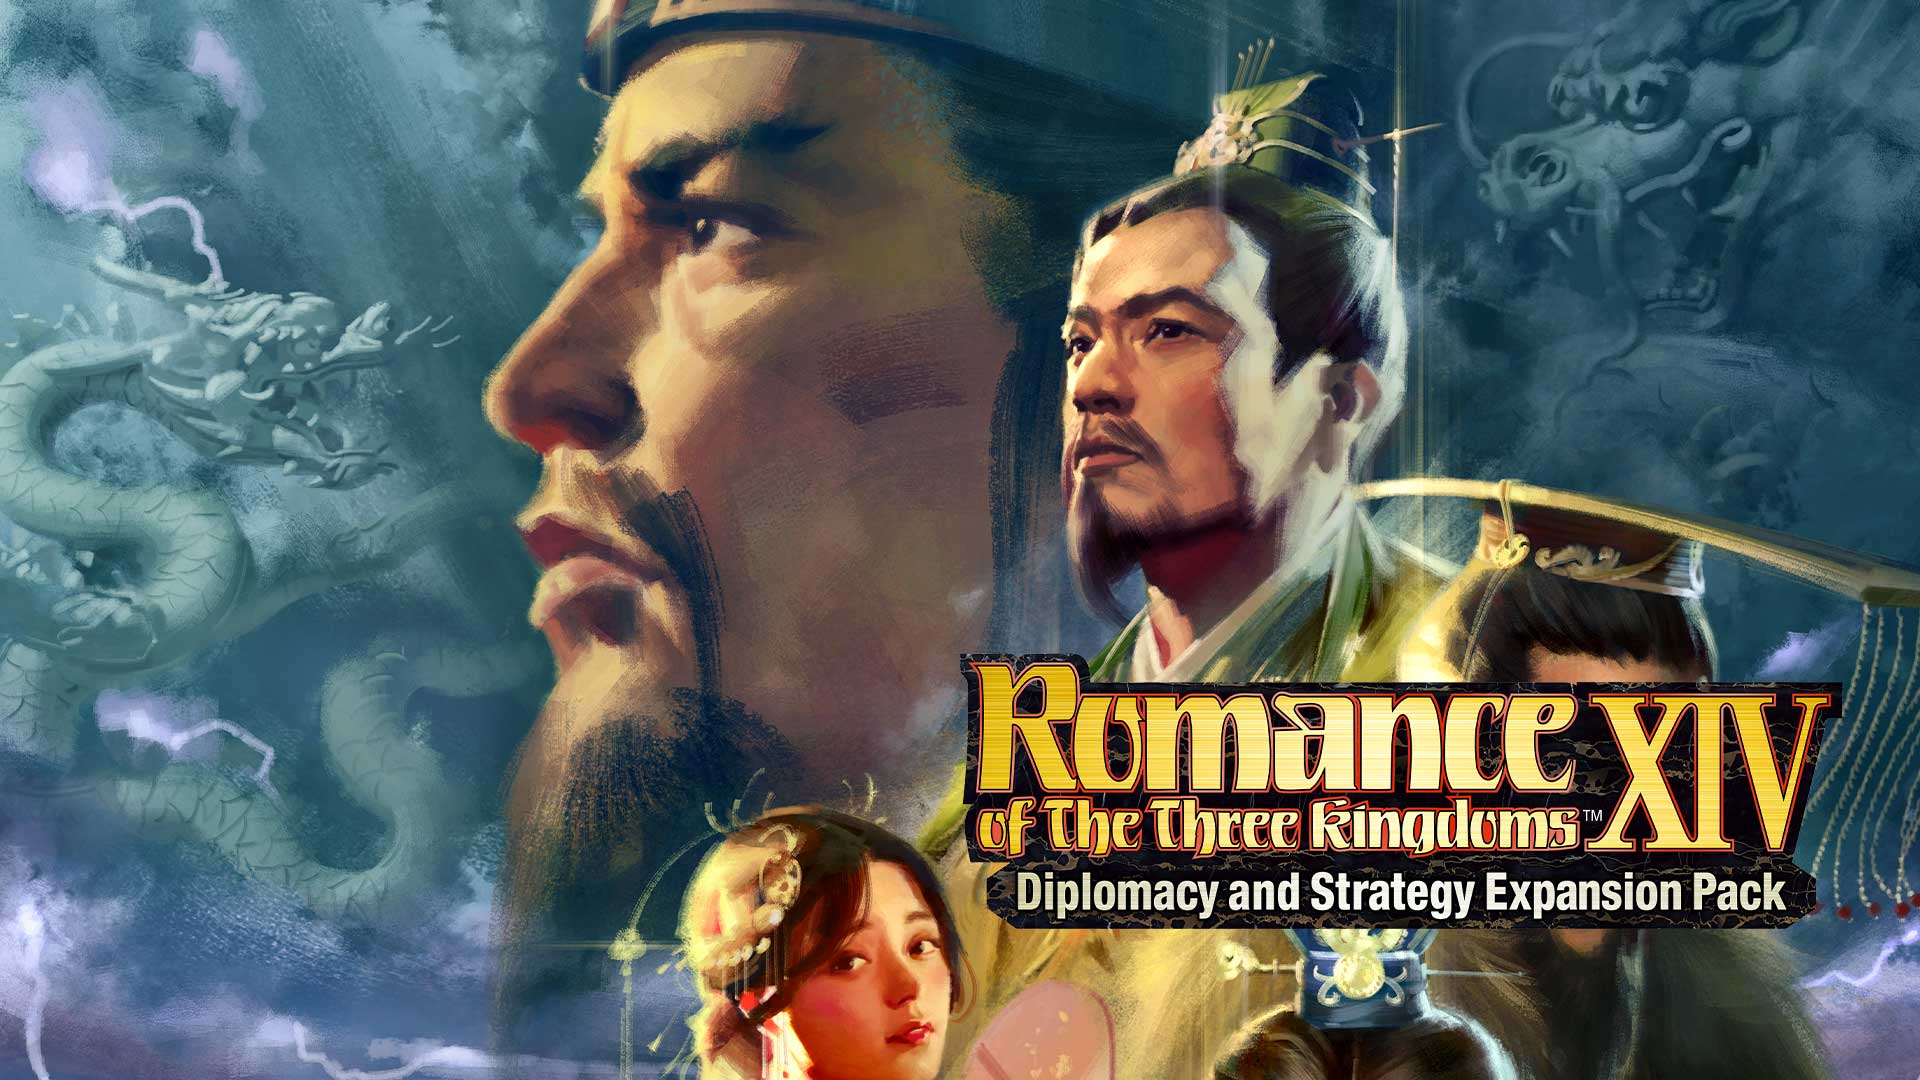 romance of the three kingdoms expansion